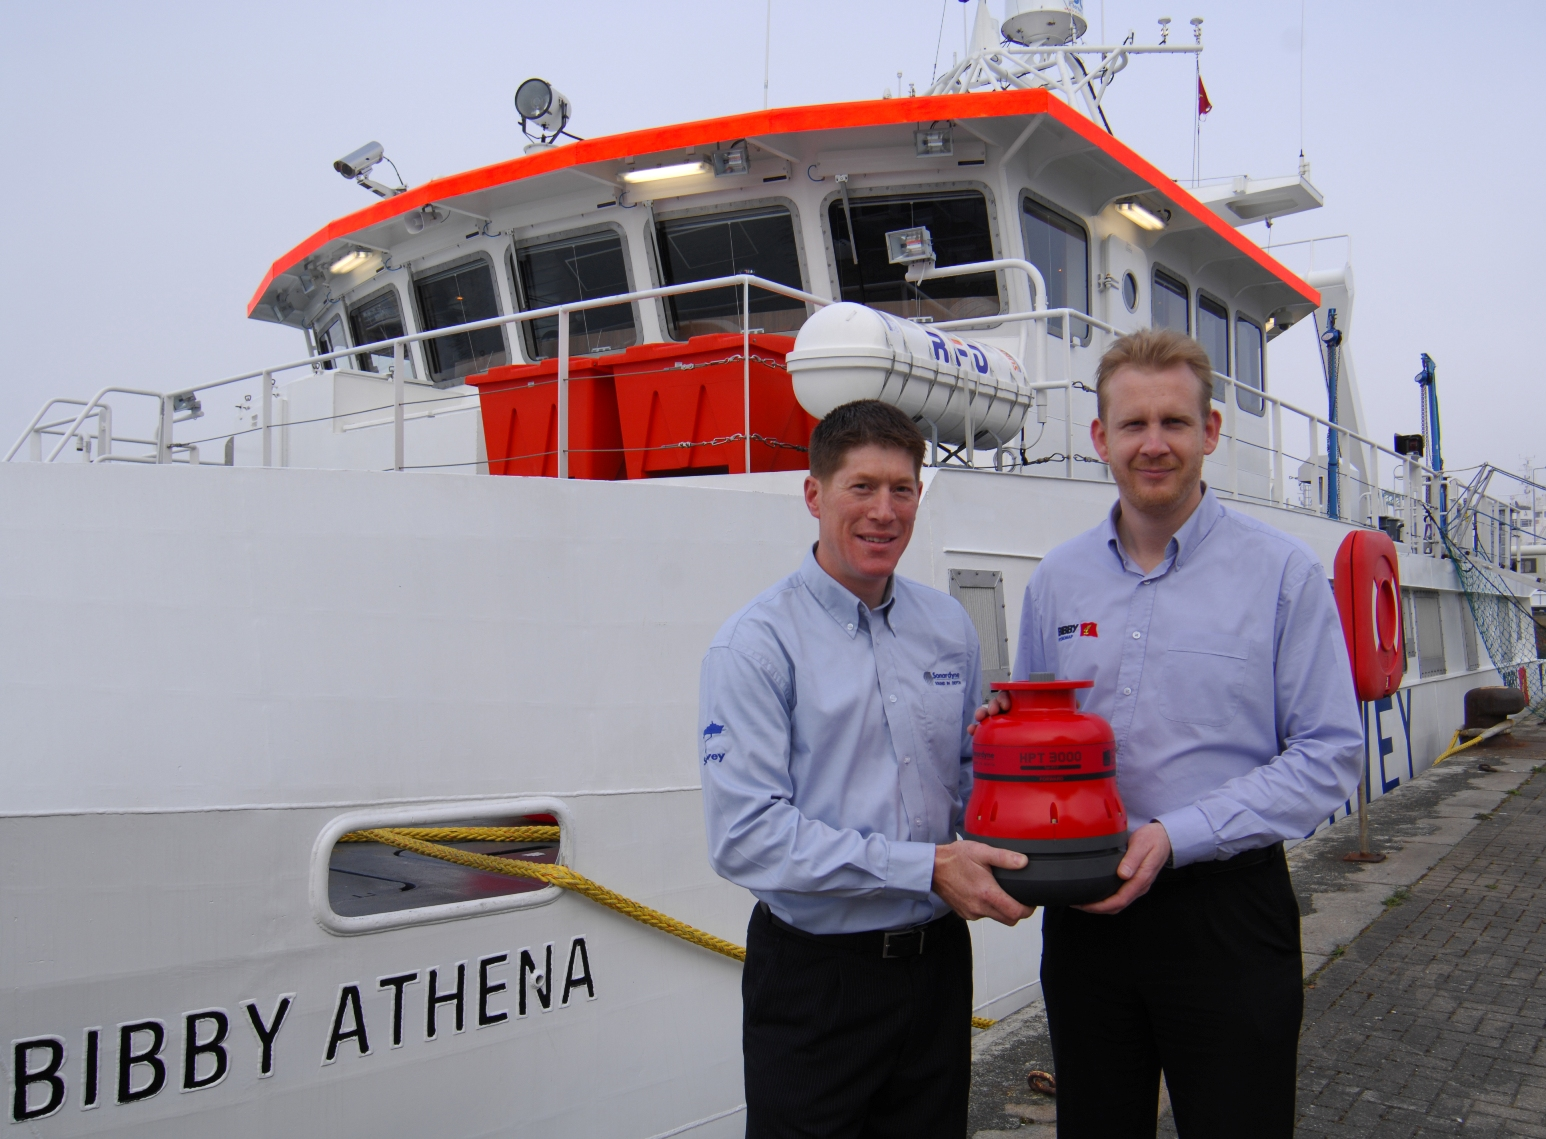 Seabed survey vessel equipped with acoustic positioning